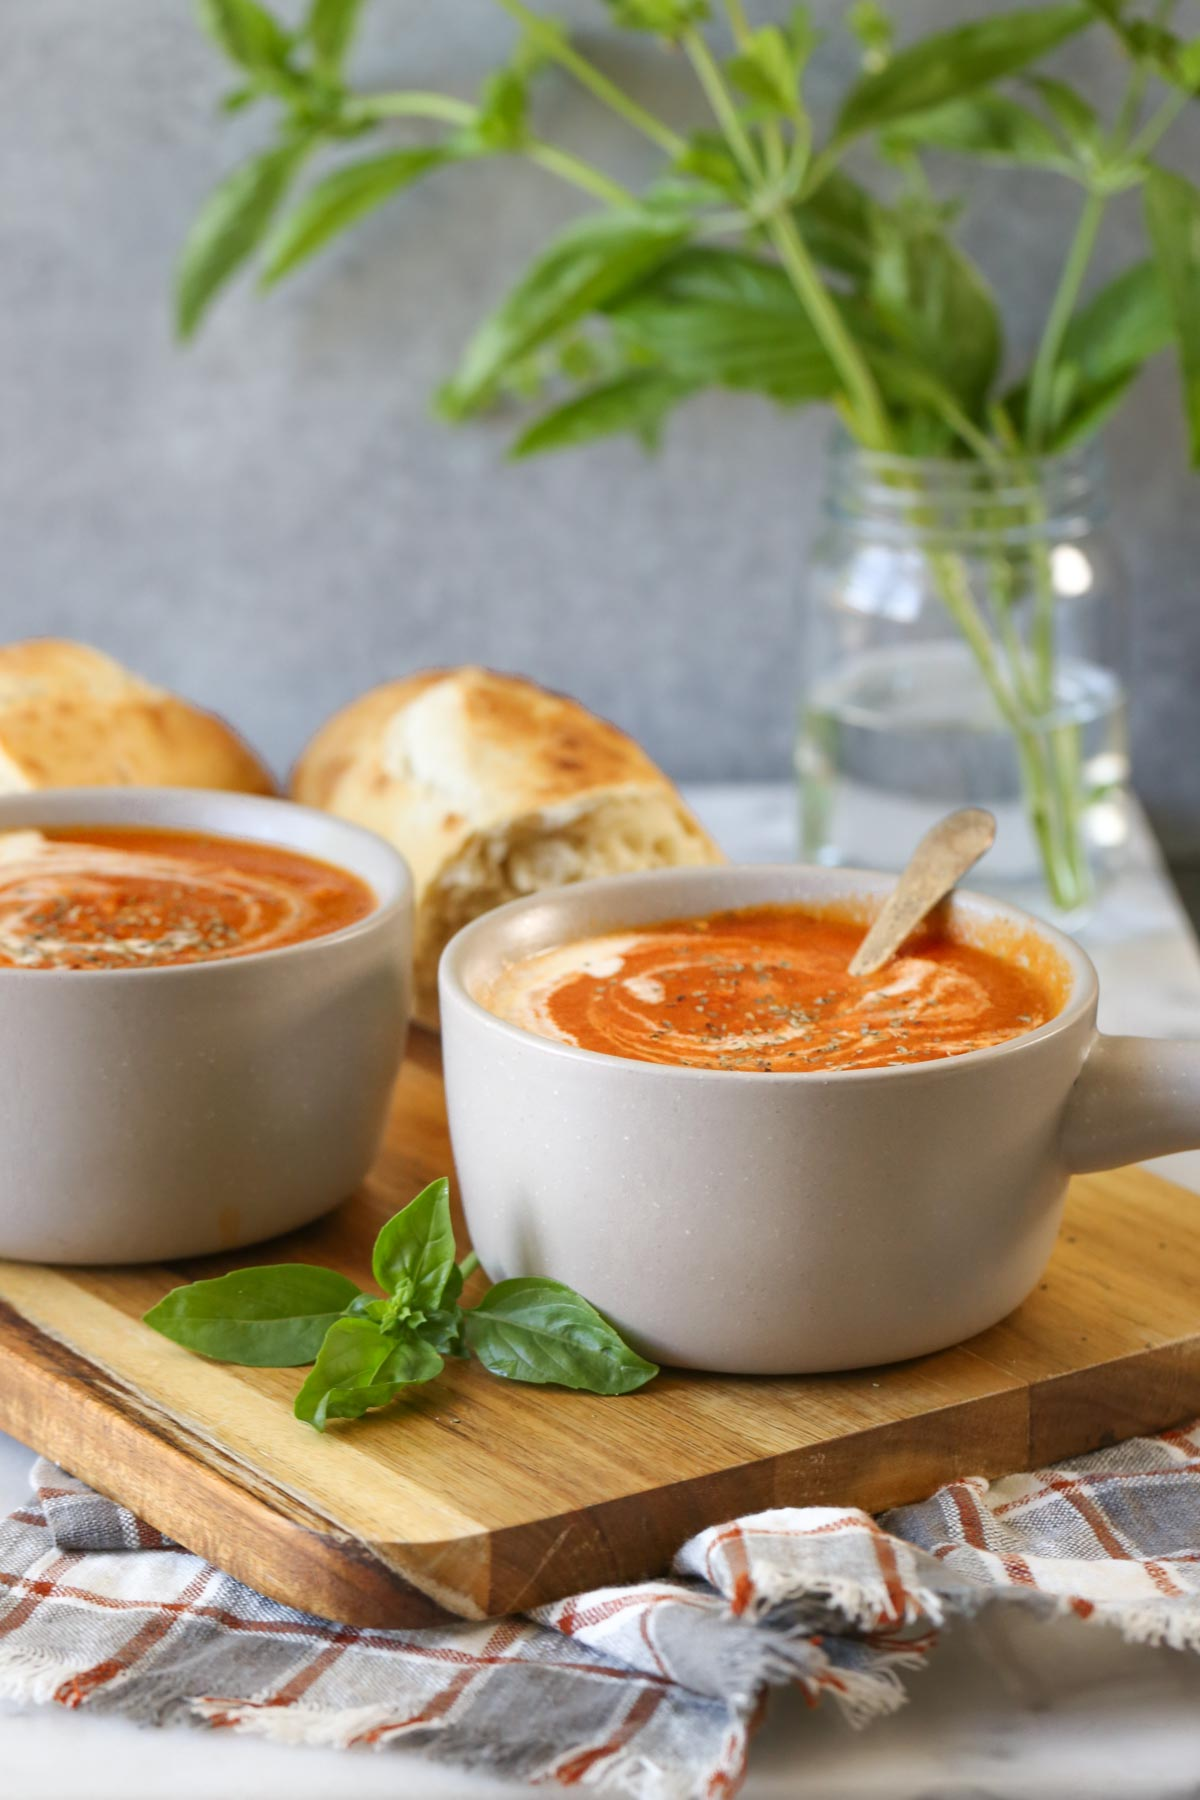 Two bowls of Creamy Balsamic Tomato Soup on a wood cutting board with two torn pieces of crusty bread.